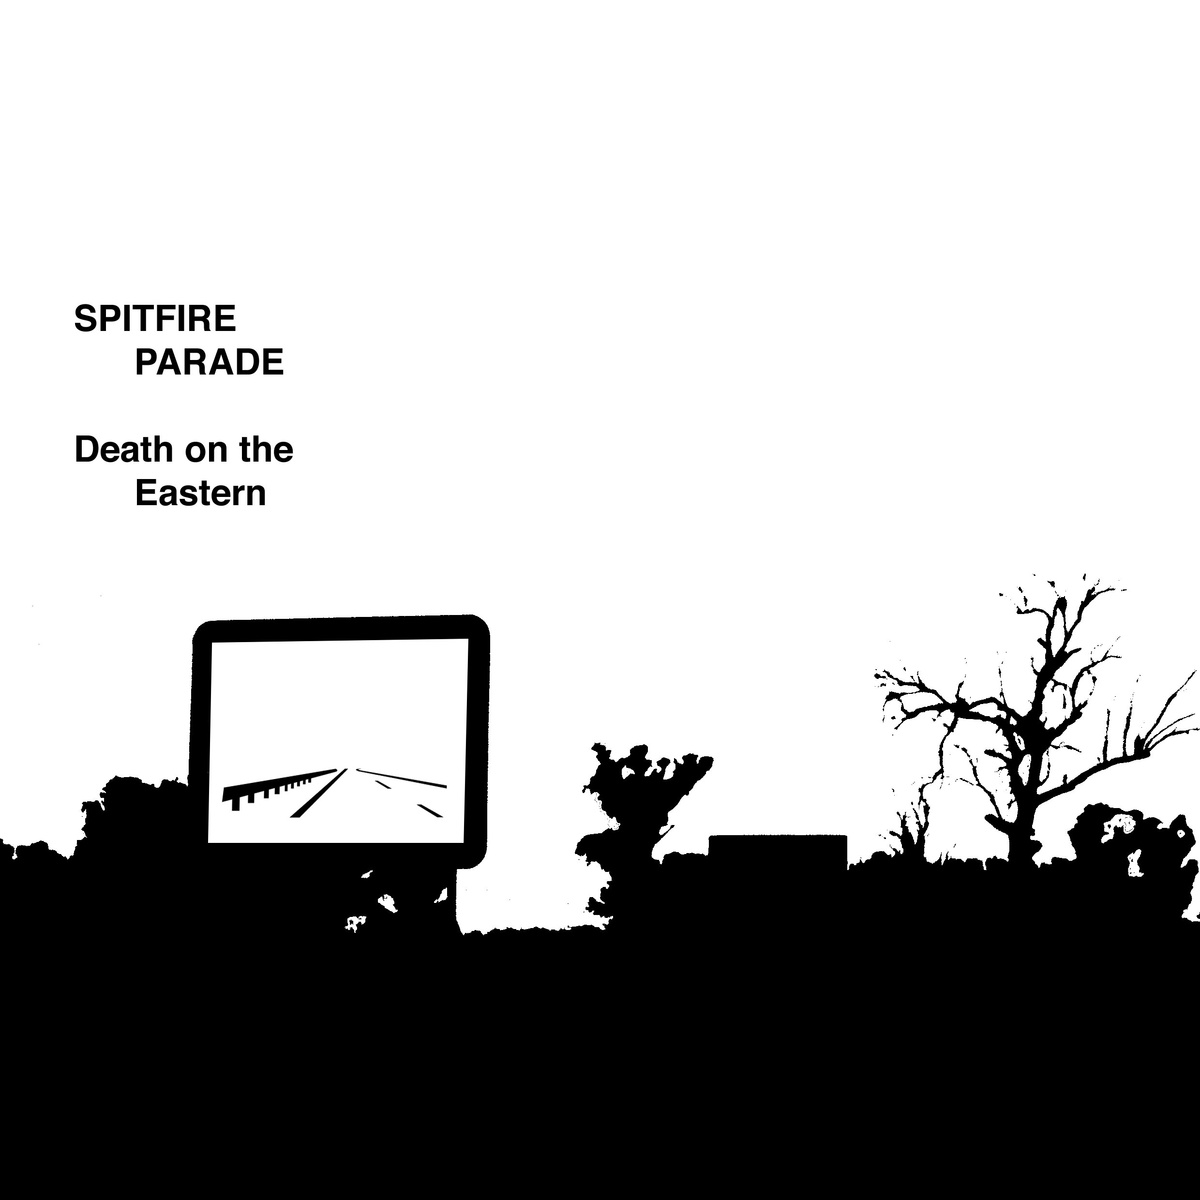 "DEATH ON THE EASTERN  (Spitfire Parade album)   CYCLIC DEFROST  Melbourne-based four-piece band Spitfire Parade describe their sound as ""electronically enhanced Ballardian drone-punk"", and this latest independent release 'Death On The Eastern' follows on from several other Bandcamp releases over the past year and a half, the most recent being 2009′s 'Now' remix collection. When I listened to the intro track here, 'Slaughterhouse Of Failure', which opens from what sounds like a stolen answering machine sample of an elderly relative leaving a message about dinner, only for buzzing, 'mock-inspirational' analogue synths and ascending metallic guitar solos to suddenly lock in around samples of a motivational religious speaker [in 'This Time'], the first associations triggered here for me were early nineties Sydney electro-punk pranksters Mr Floppy. Indeed, the punky, deliberately primitivist ['Seconds'] certainly calls to mind at least a few flashbacks to Mr. Floppy's classic 'Homebrew', with its yelled, thuggy vocals and Suicide-style blur of cheap drum machine rhythms, but in this case, it's more a Buzzcocks meets Primal Scream circa 'Xtrminator' vibe that Spitfire Parade are really going for.   There's certainly an impressive amount of lateral experimentation going on amongst this album's comparatively brief 36 minute running time, ranging from 'Rattlesnake's jagged fusion of free-jazz horn bursts, sinuous post-punk bass figures and chaotically manipulated samples, through to 'Heatwave's virtual car chase theme, which even manages to throw a mass of video game-style police sirens beneath the trip-hammer drum machines and Mission Of Burma-style punky vocal hooks, and 'When I Get Home's moody flameout of Joy Division-esque guitar noise and tribal programmed rhythms. While the references are often easily to pinpoint here though, in this case it's the quality of the songs themselves that really counts, making Spitfire Parade considerably more than just another in the seemingly endless wave of post-punk centred acts operating these days. It's also well worth mentioning the gorgeous packaging on the handmade CDR release, which features an opaque multi-leveled sleeve constructed using onion-skin paper and transparency.   - Chris Downton"